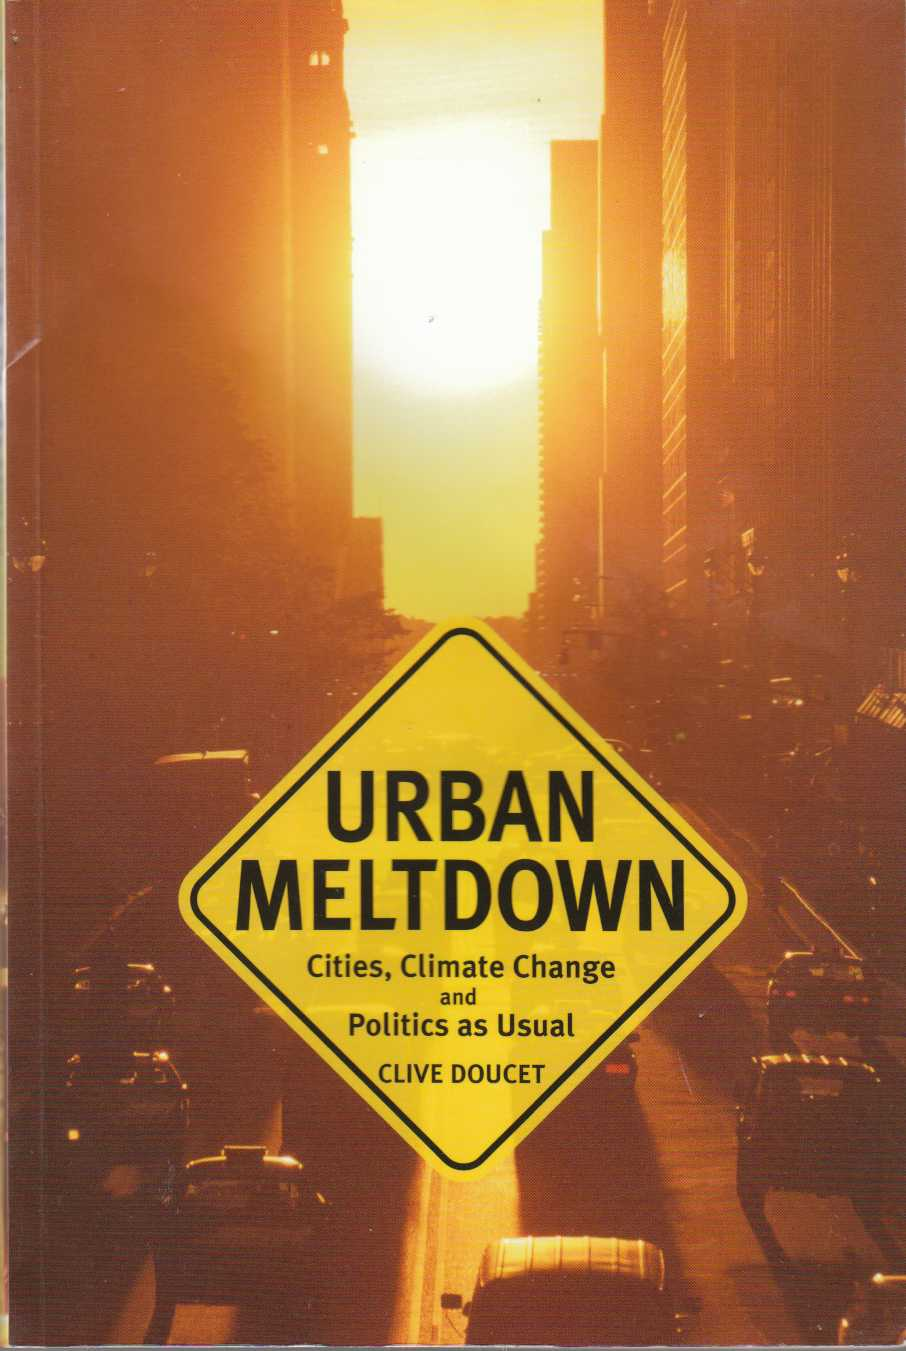 Image for Urban Meltdown Cities, Climate Change and Politics As Usual